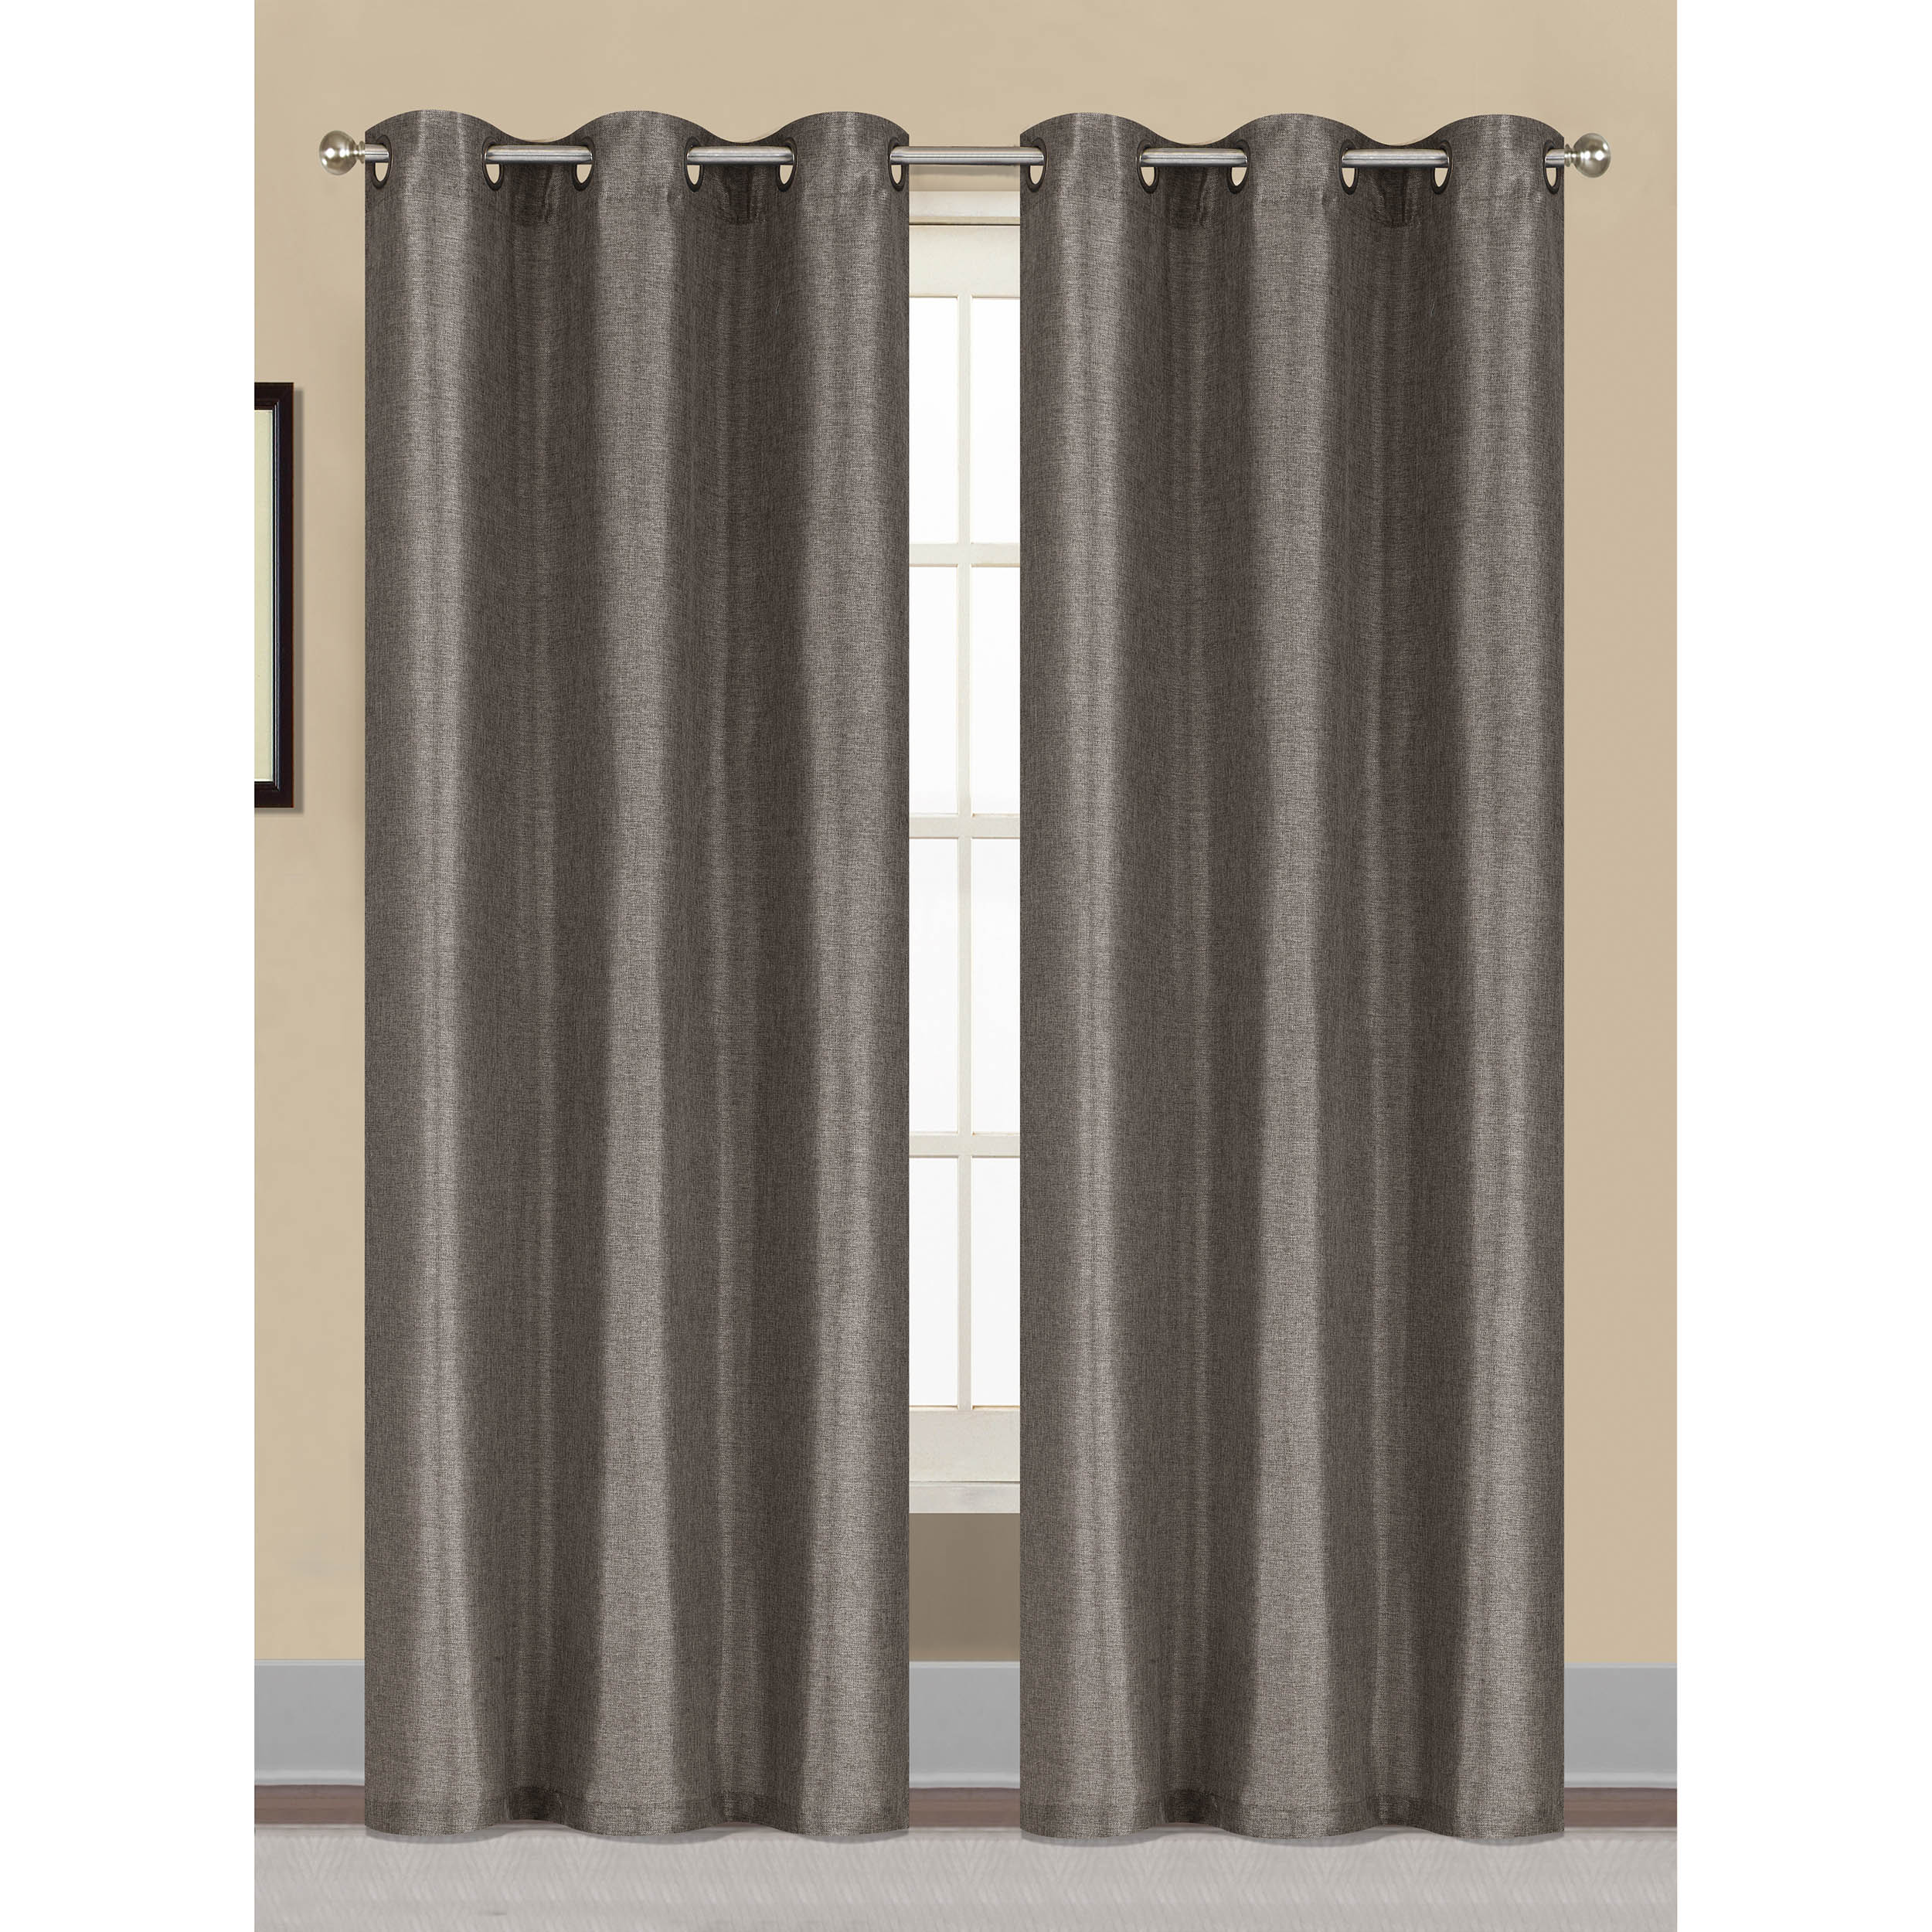 Willow Textured Woven Grommet Curtain Panel Pairs